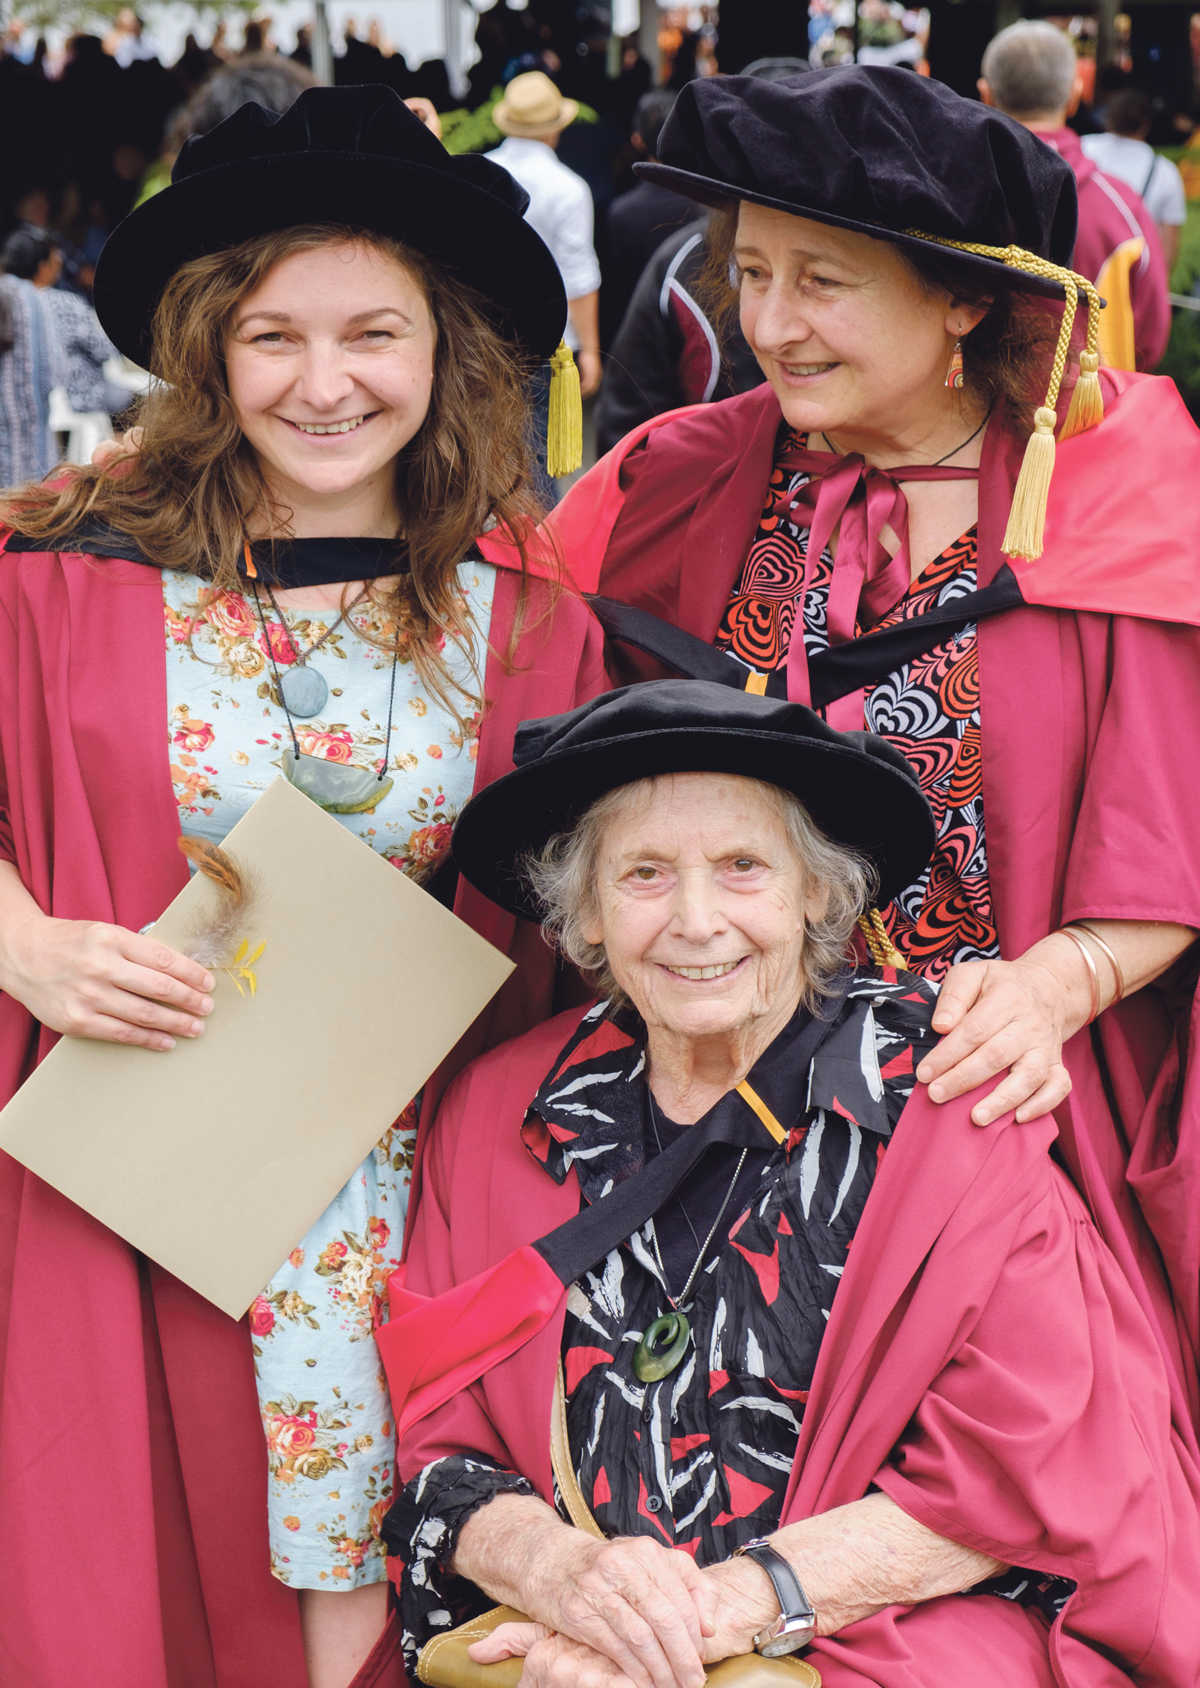 Three generations of Ritchie women in their PHD regalia, clockwise from left: Isa, Jenny and Jane Ritchie during Isa's graduation.